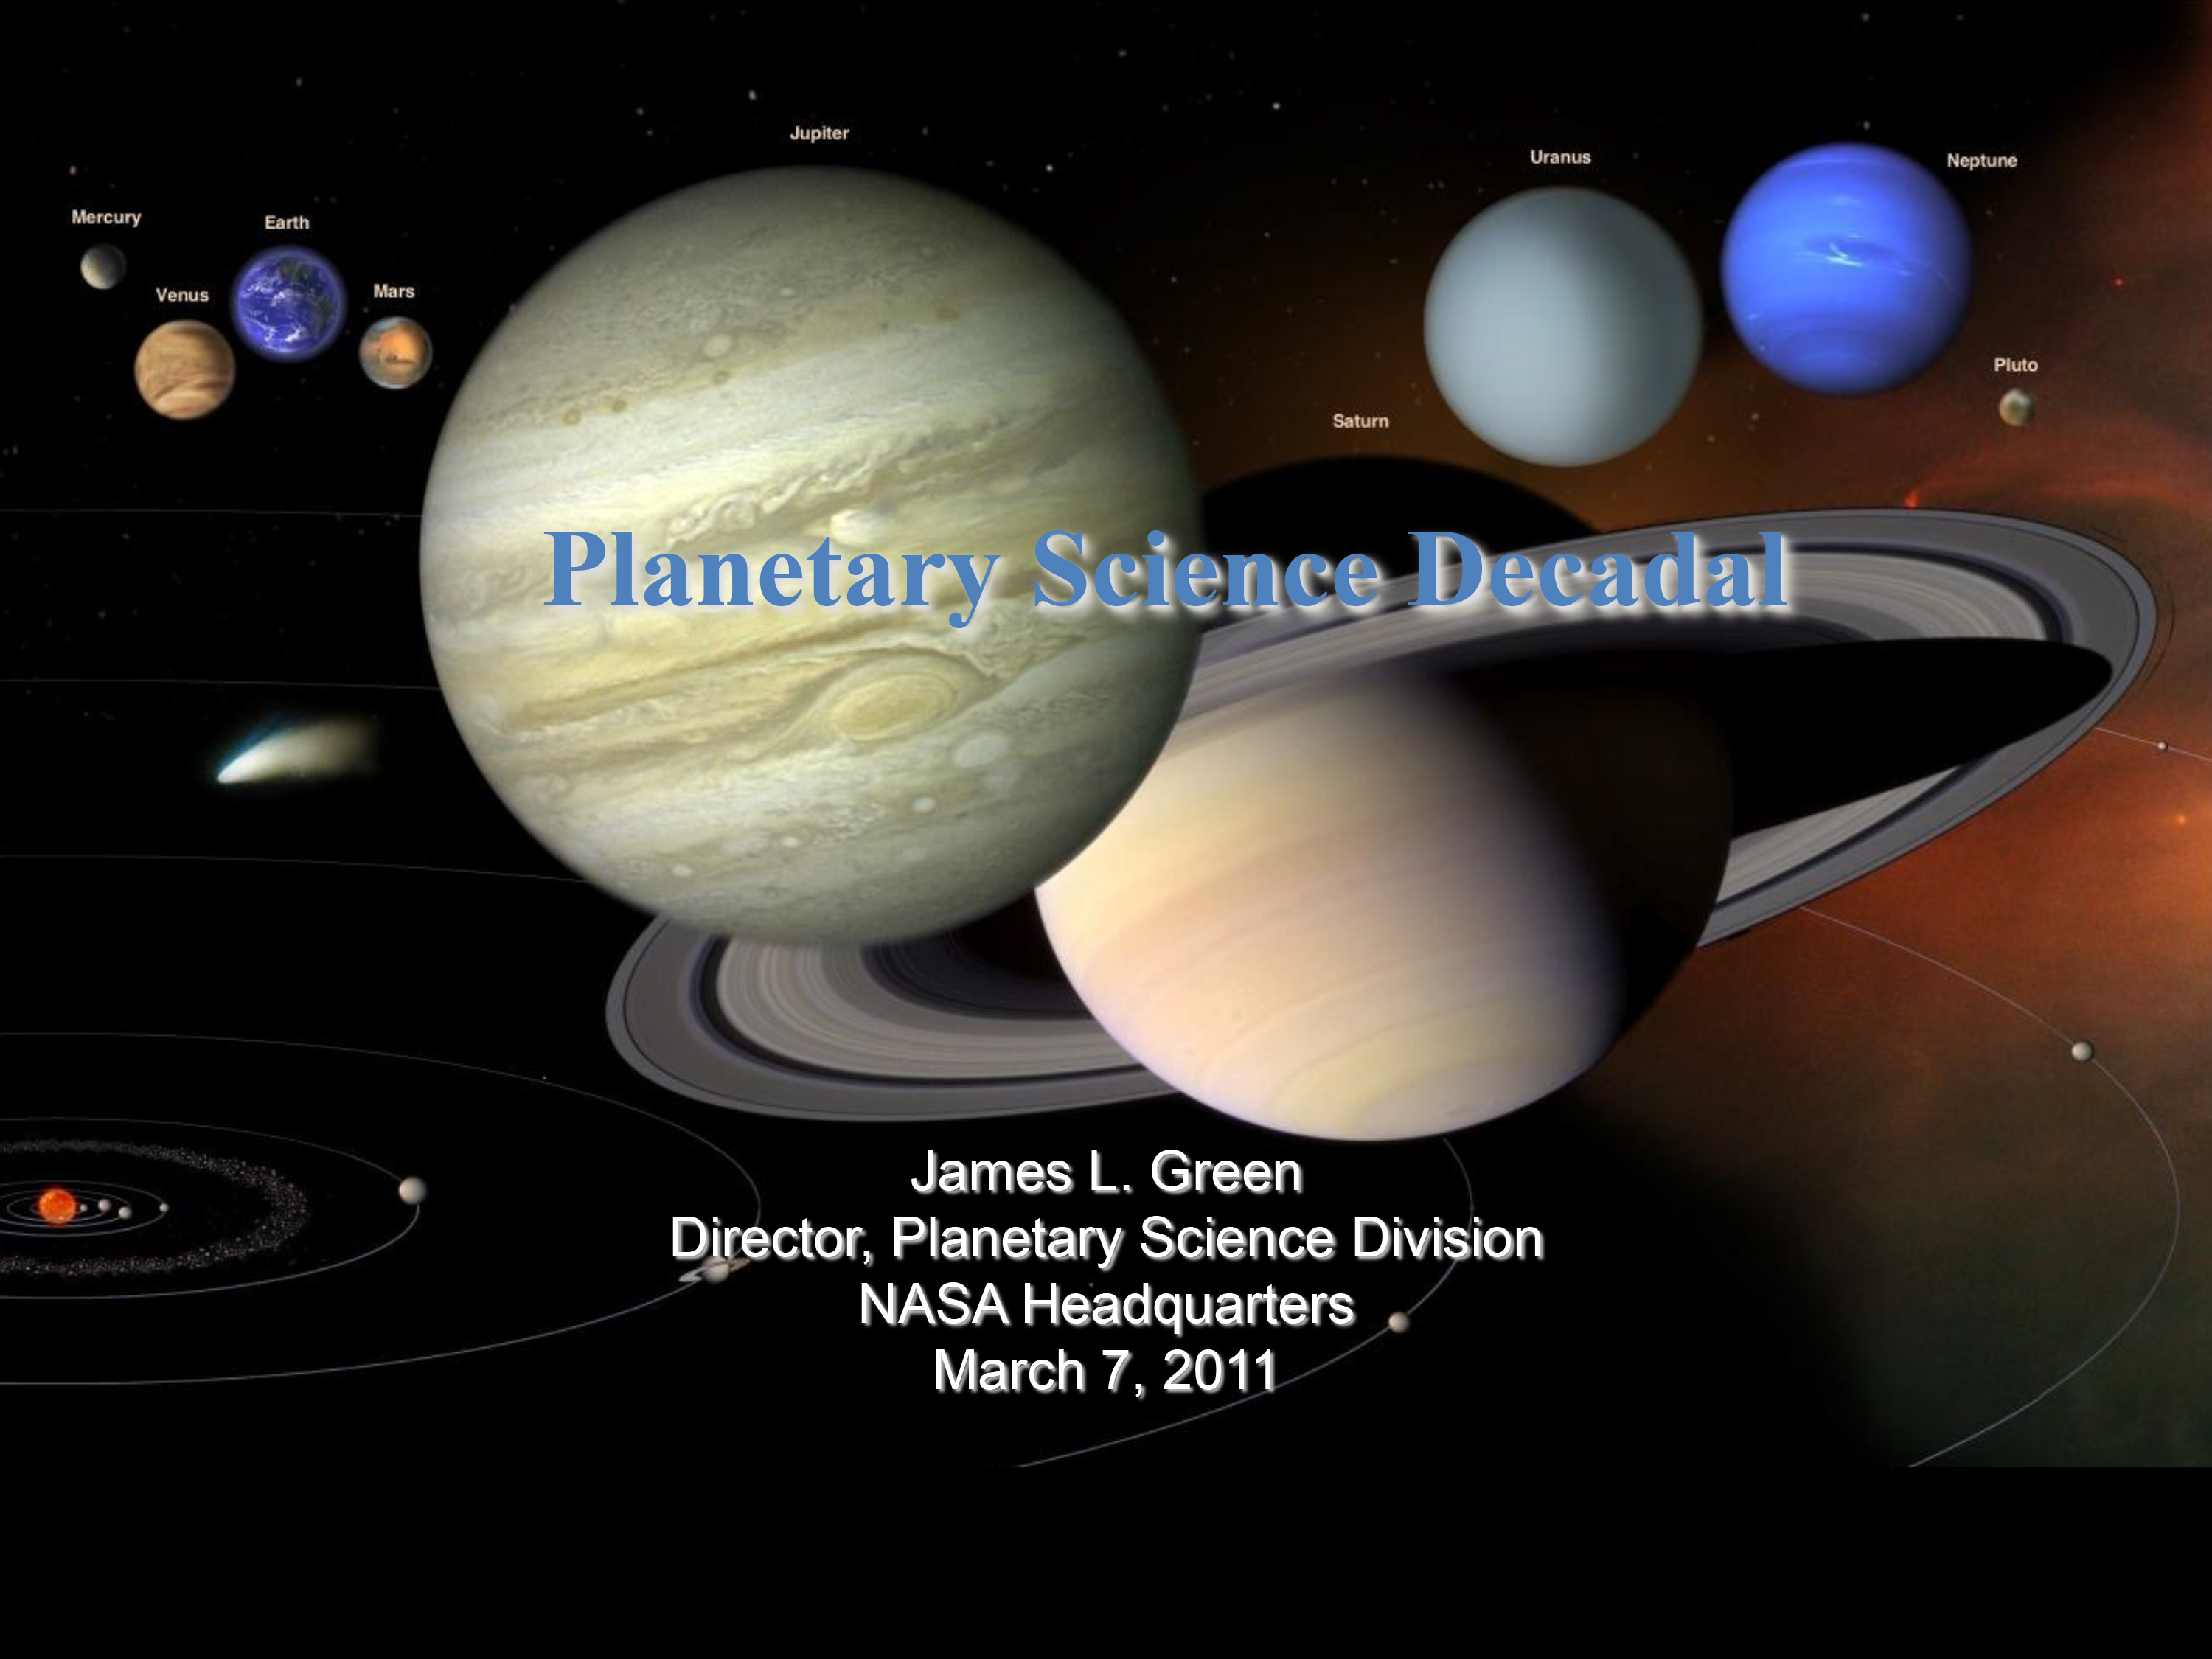 Planetary Science Decadal by Planetary Science Division Director Dr. James Green.